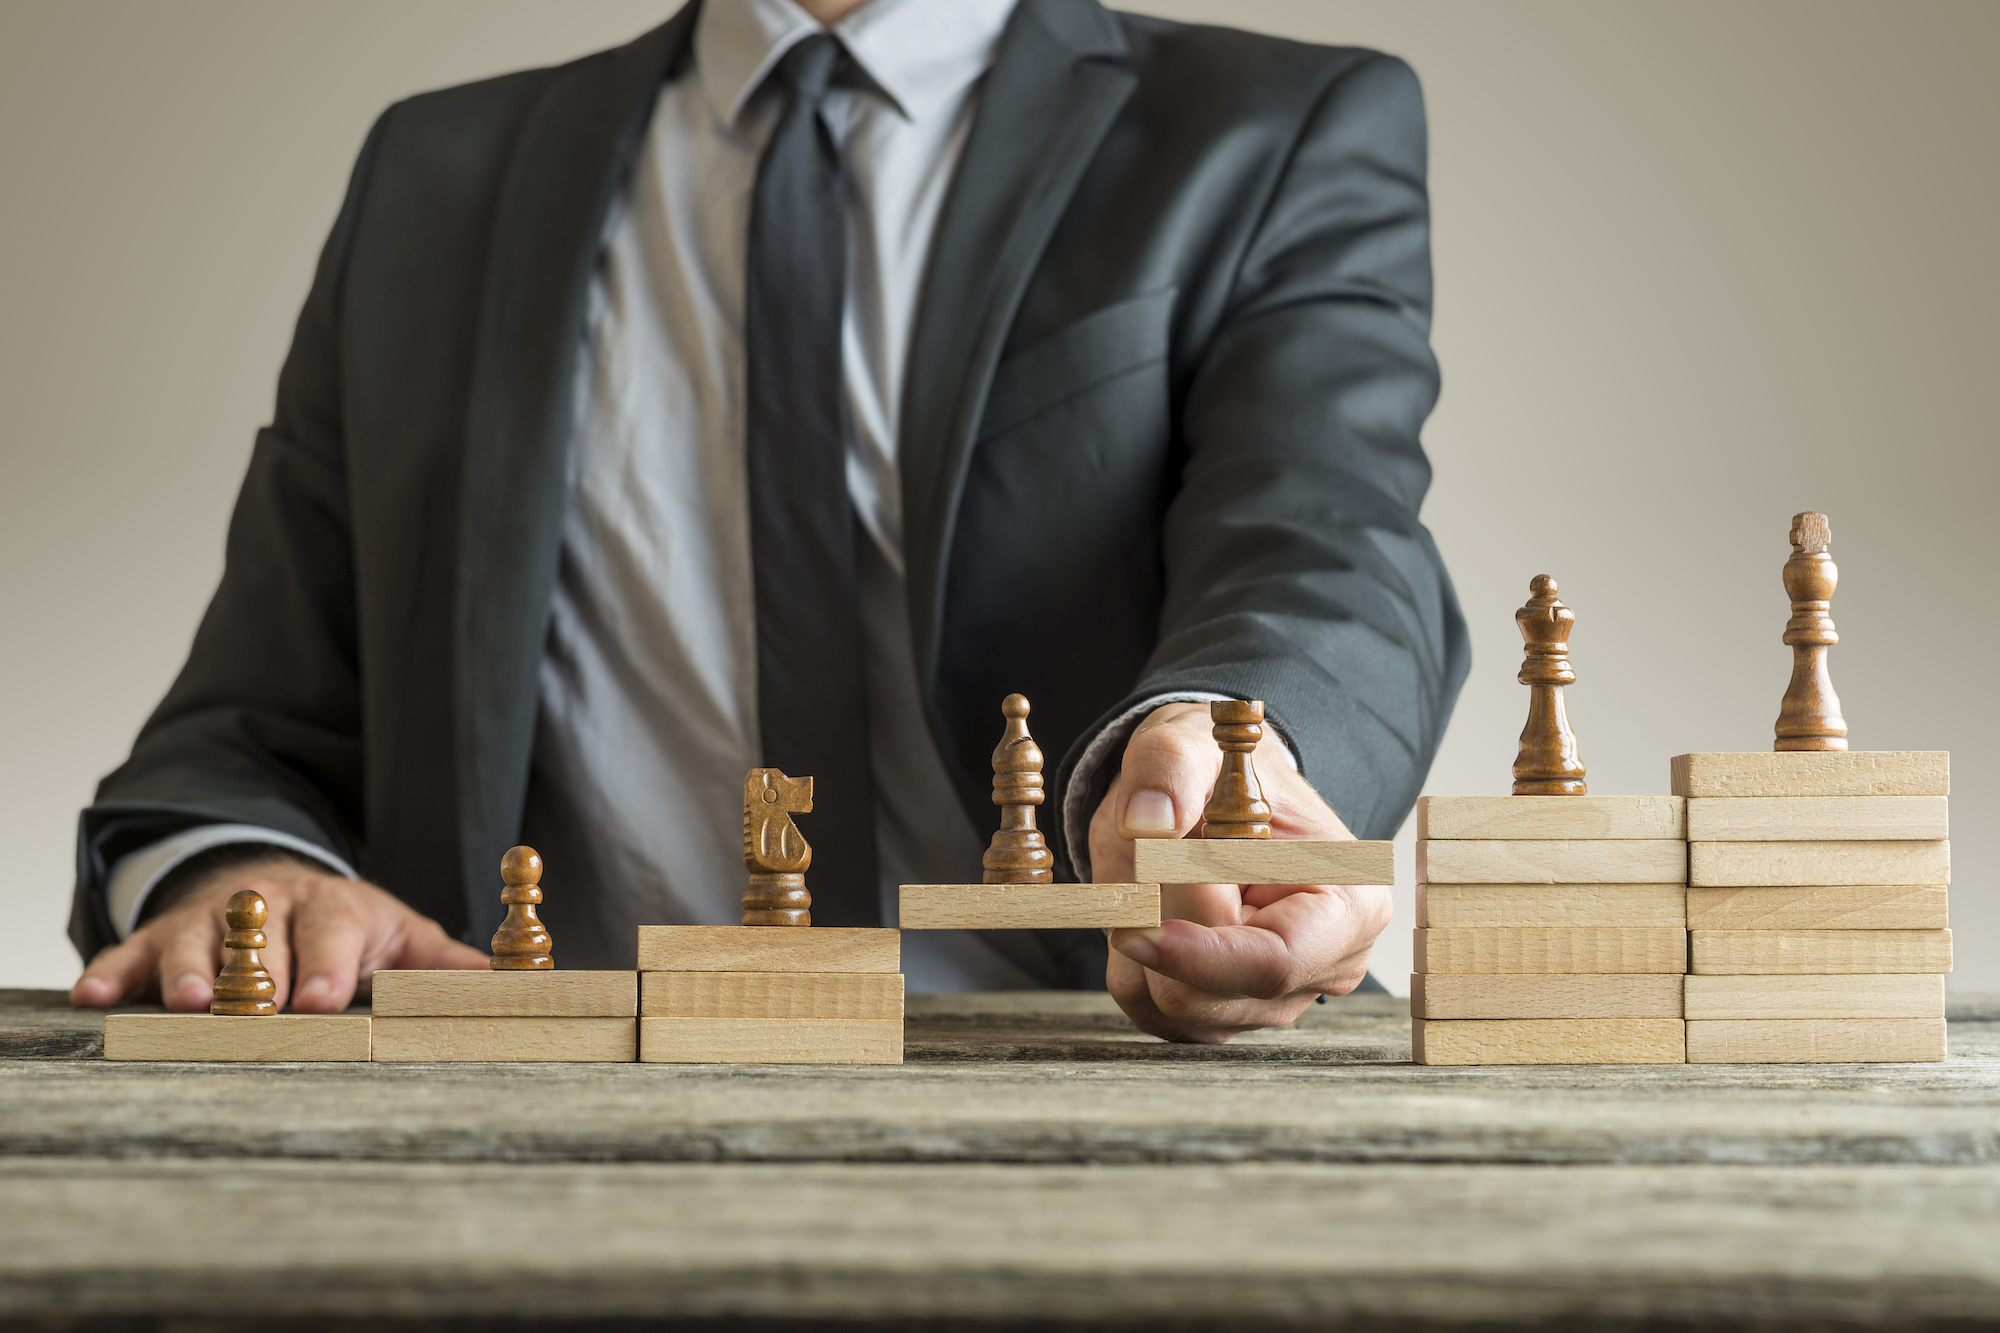 Conceptual image of career management with a businessman forming a bridge of wooden building blocks for chess pieces developing from pawn to king.